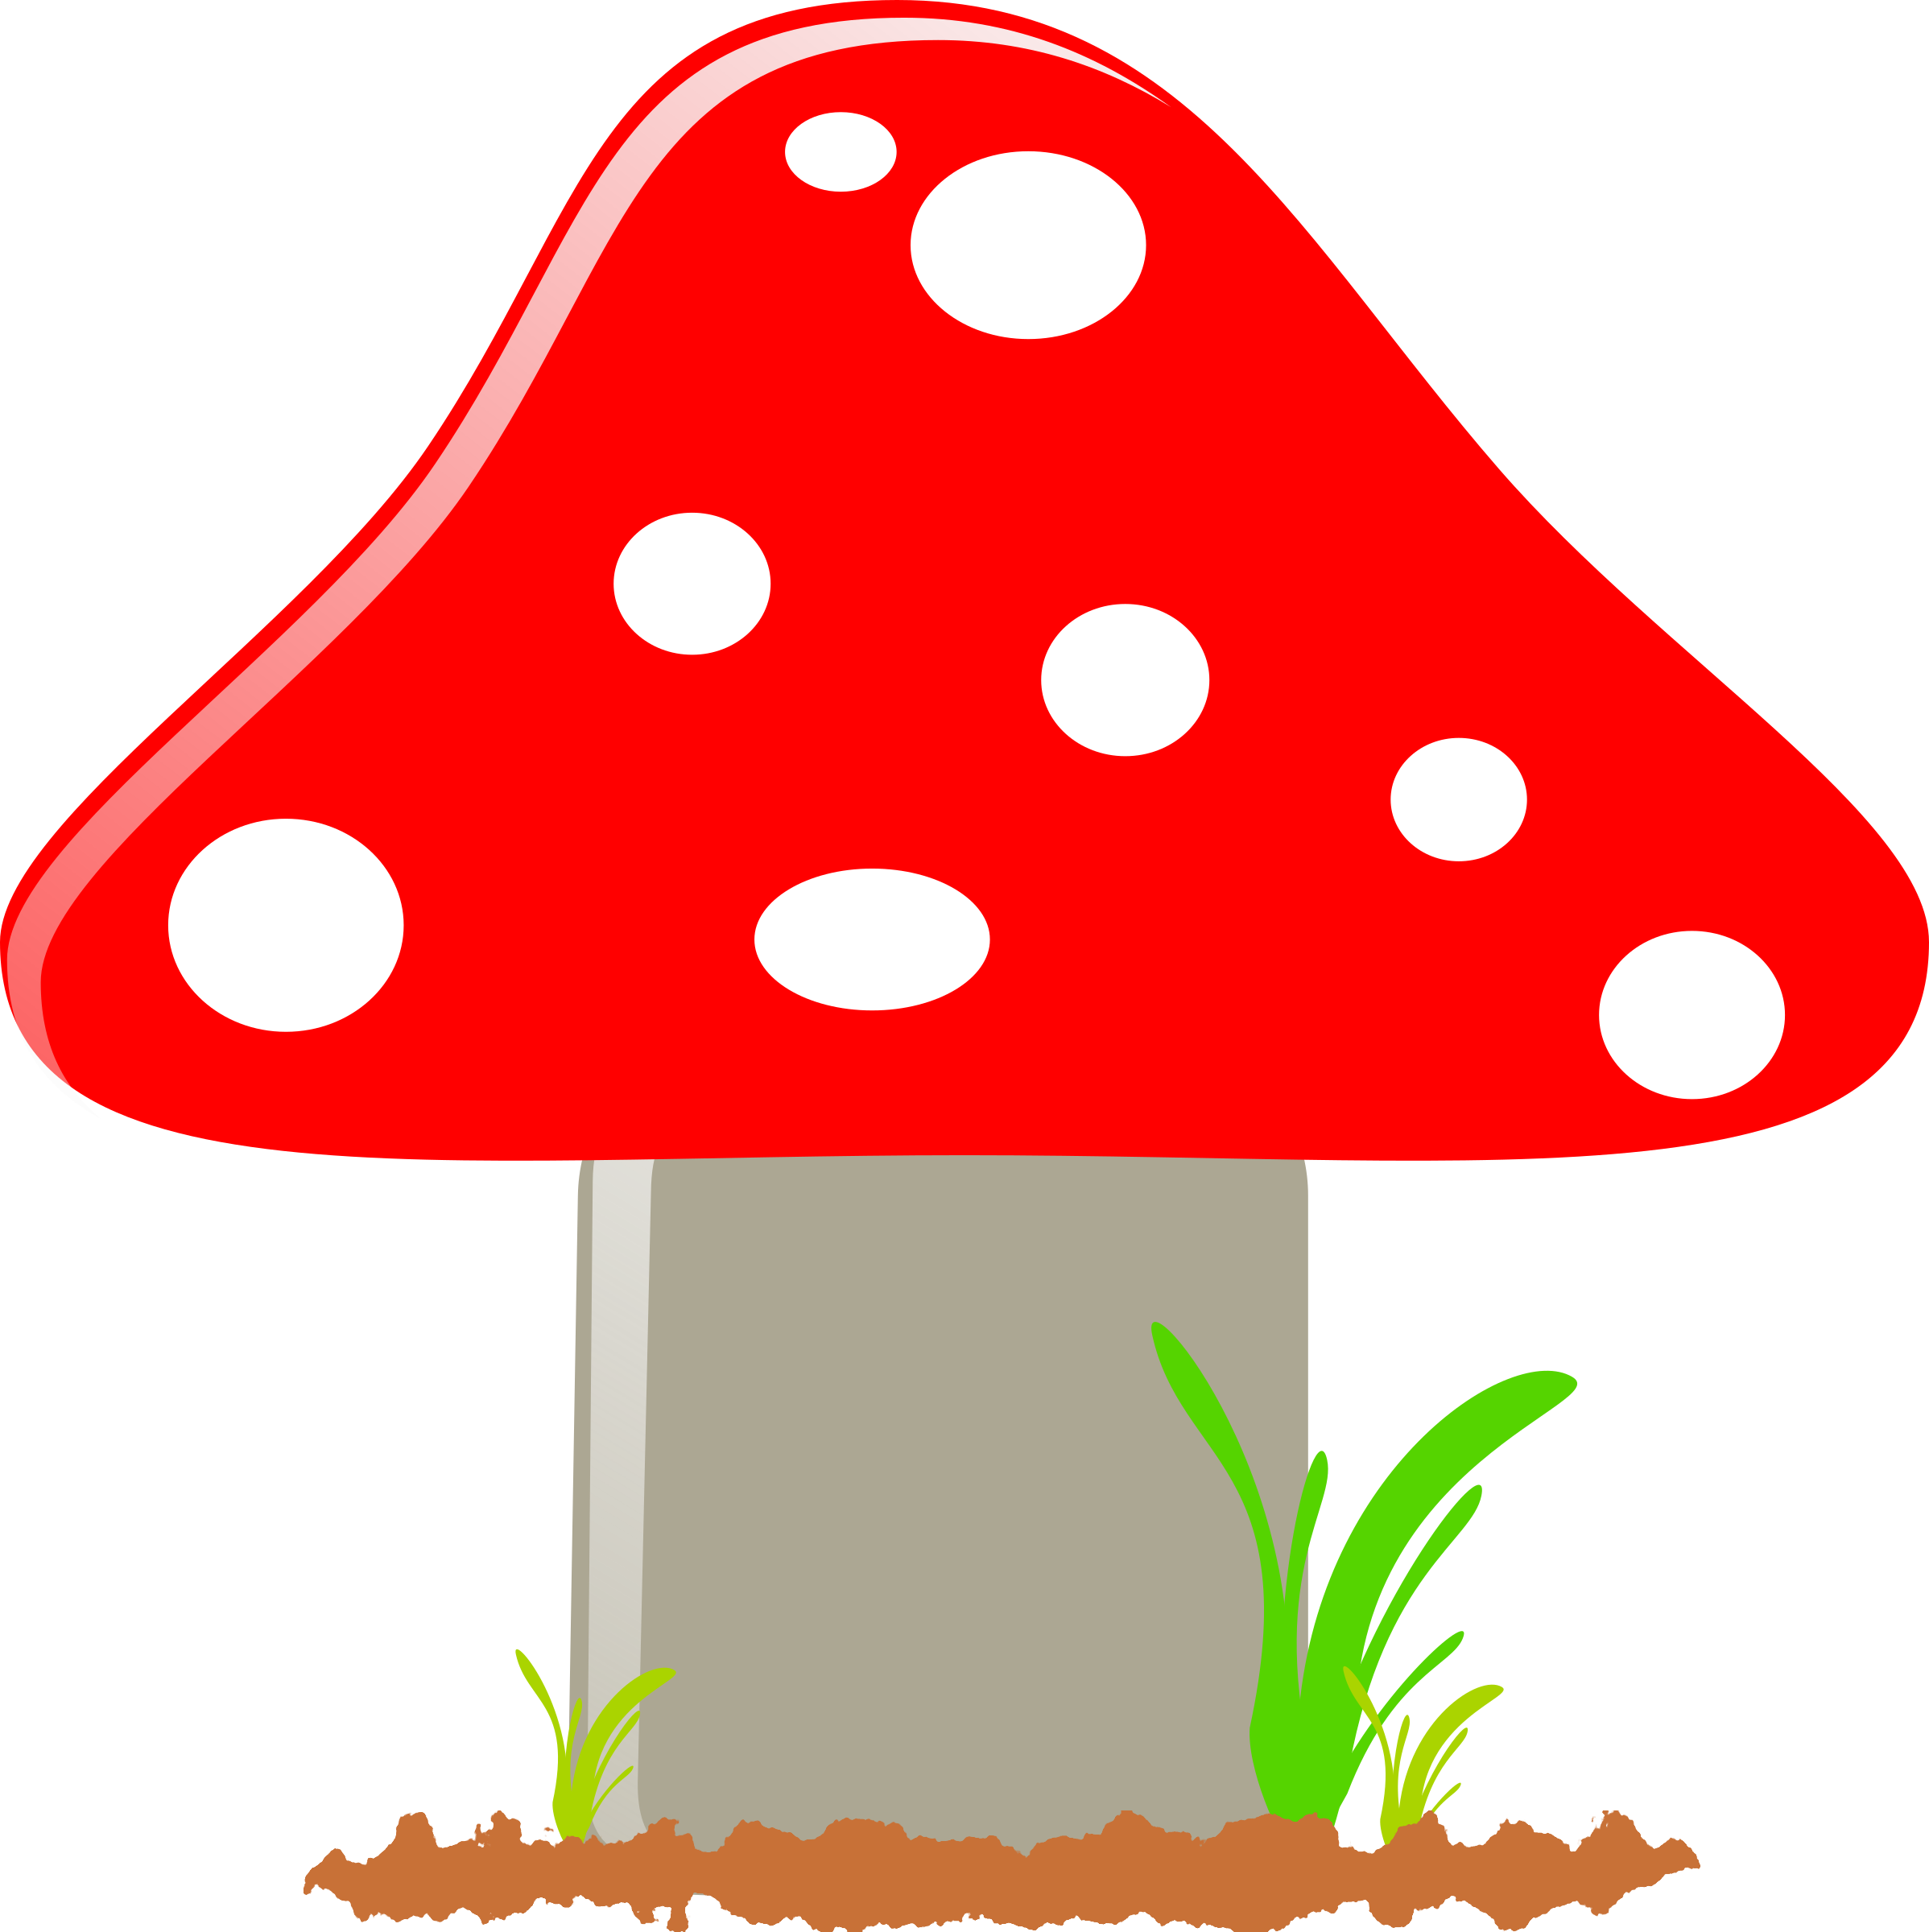 clipart mushroom   seta May Flowers Clip Art Butterflies and Flowers Clip Art